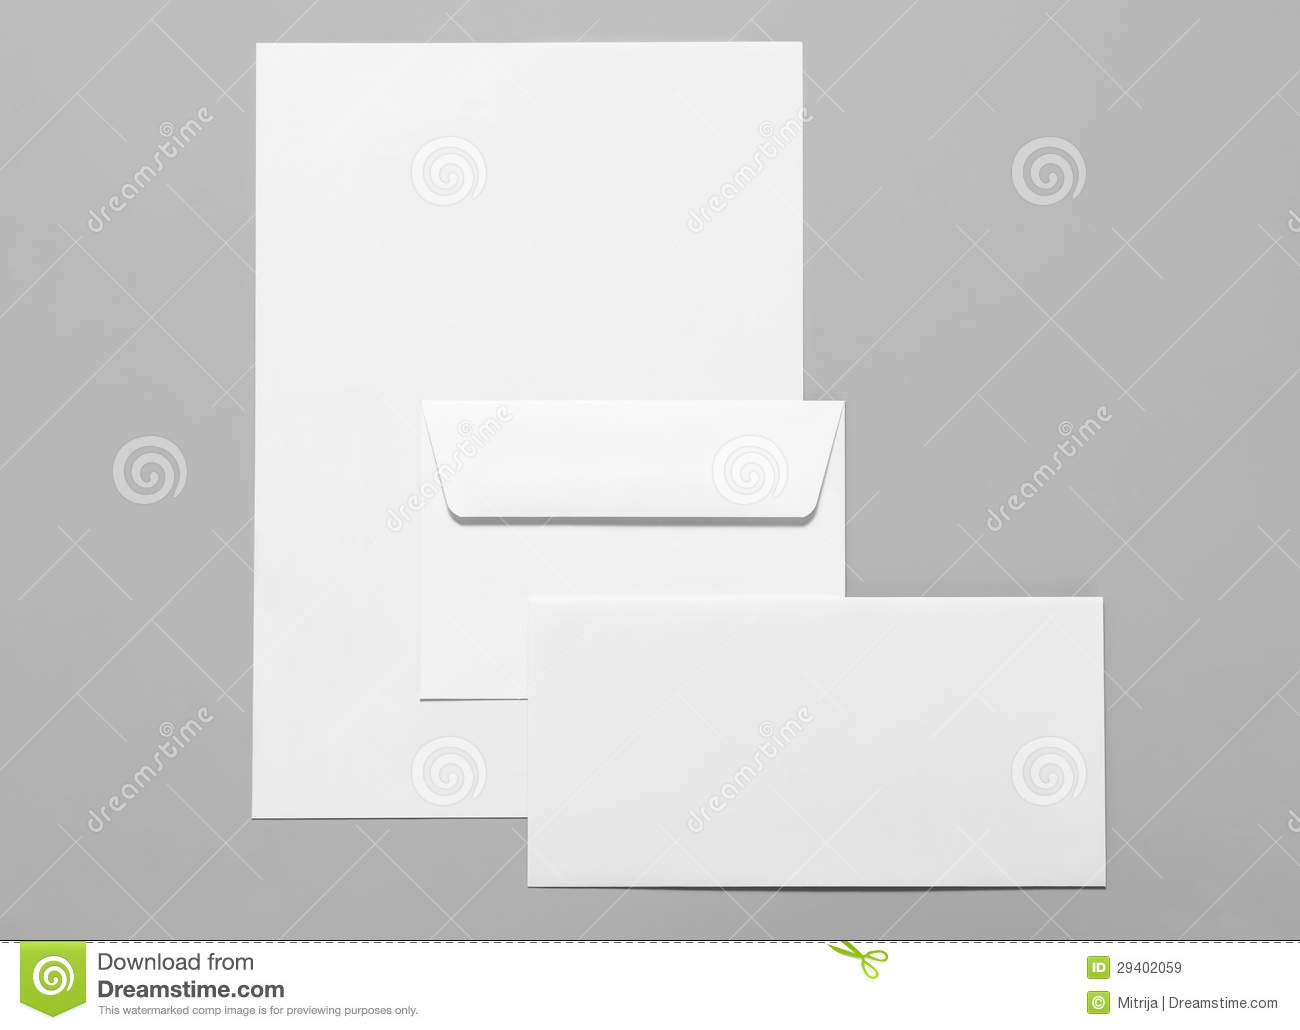 Blank Stationery Royalty Free Stock Images - Image: 29402059